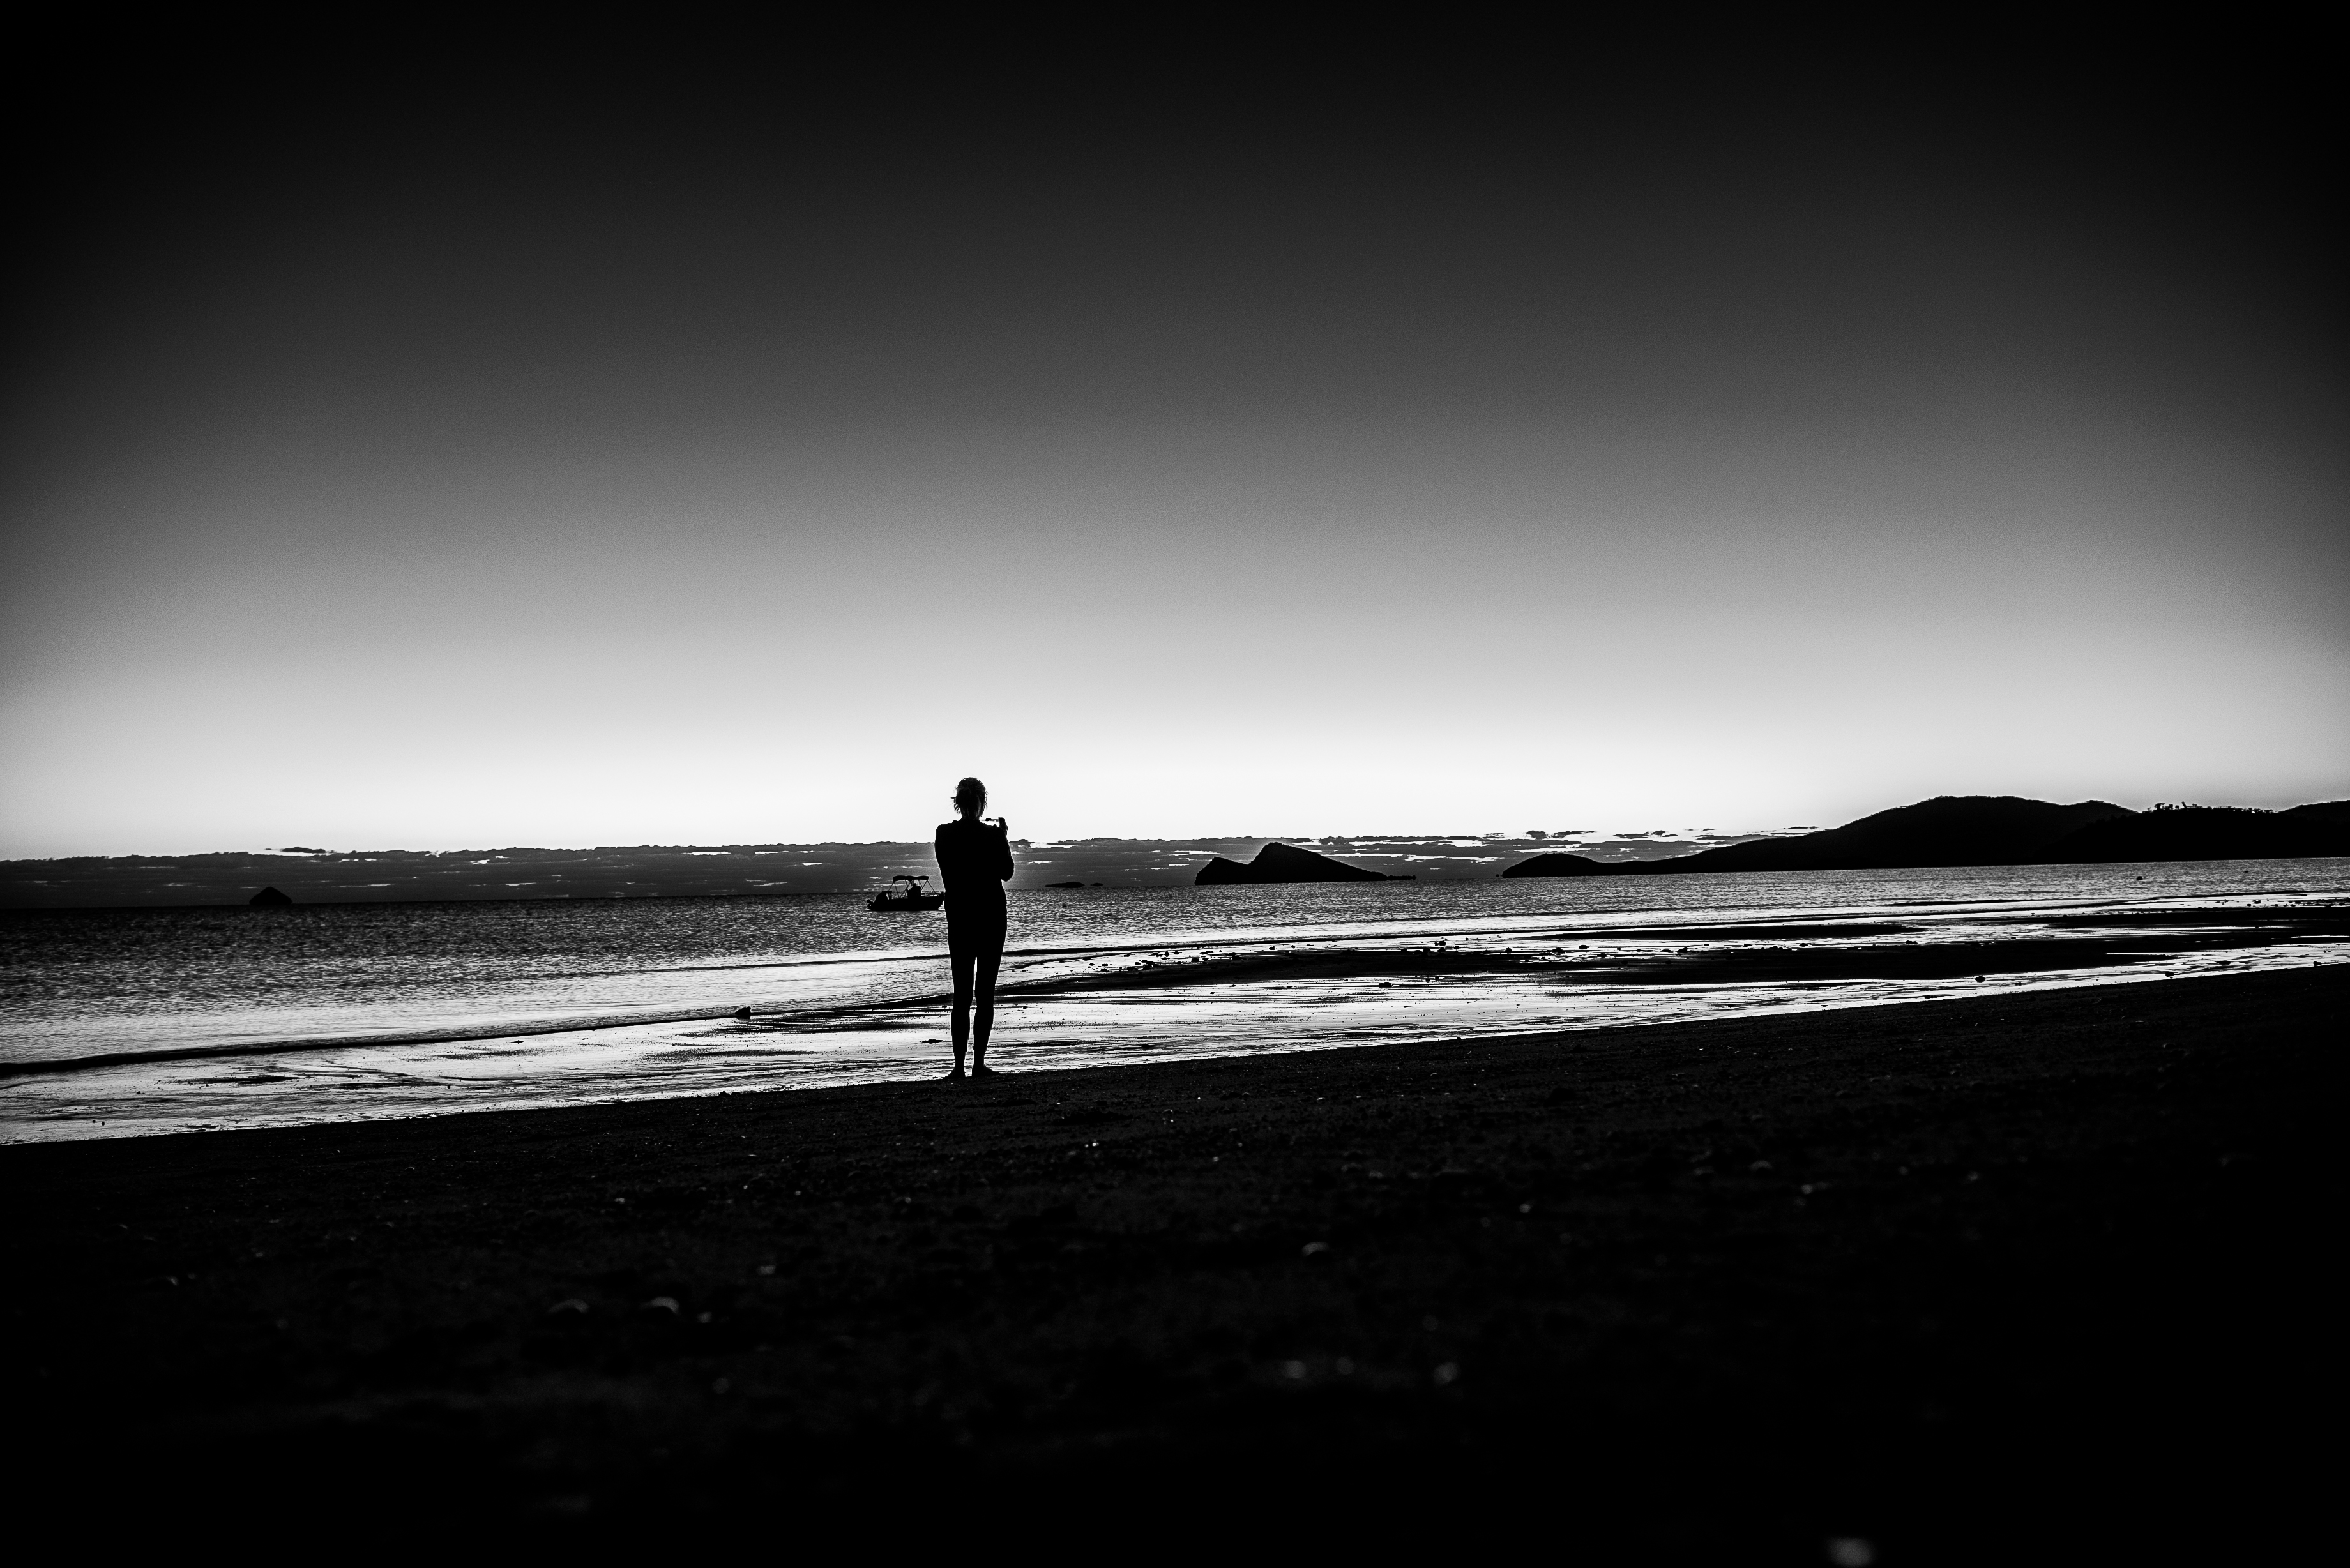 Single person on beach